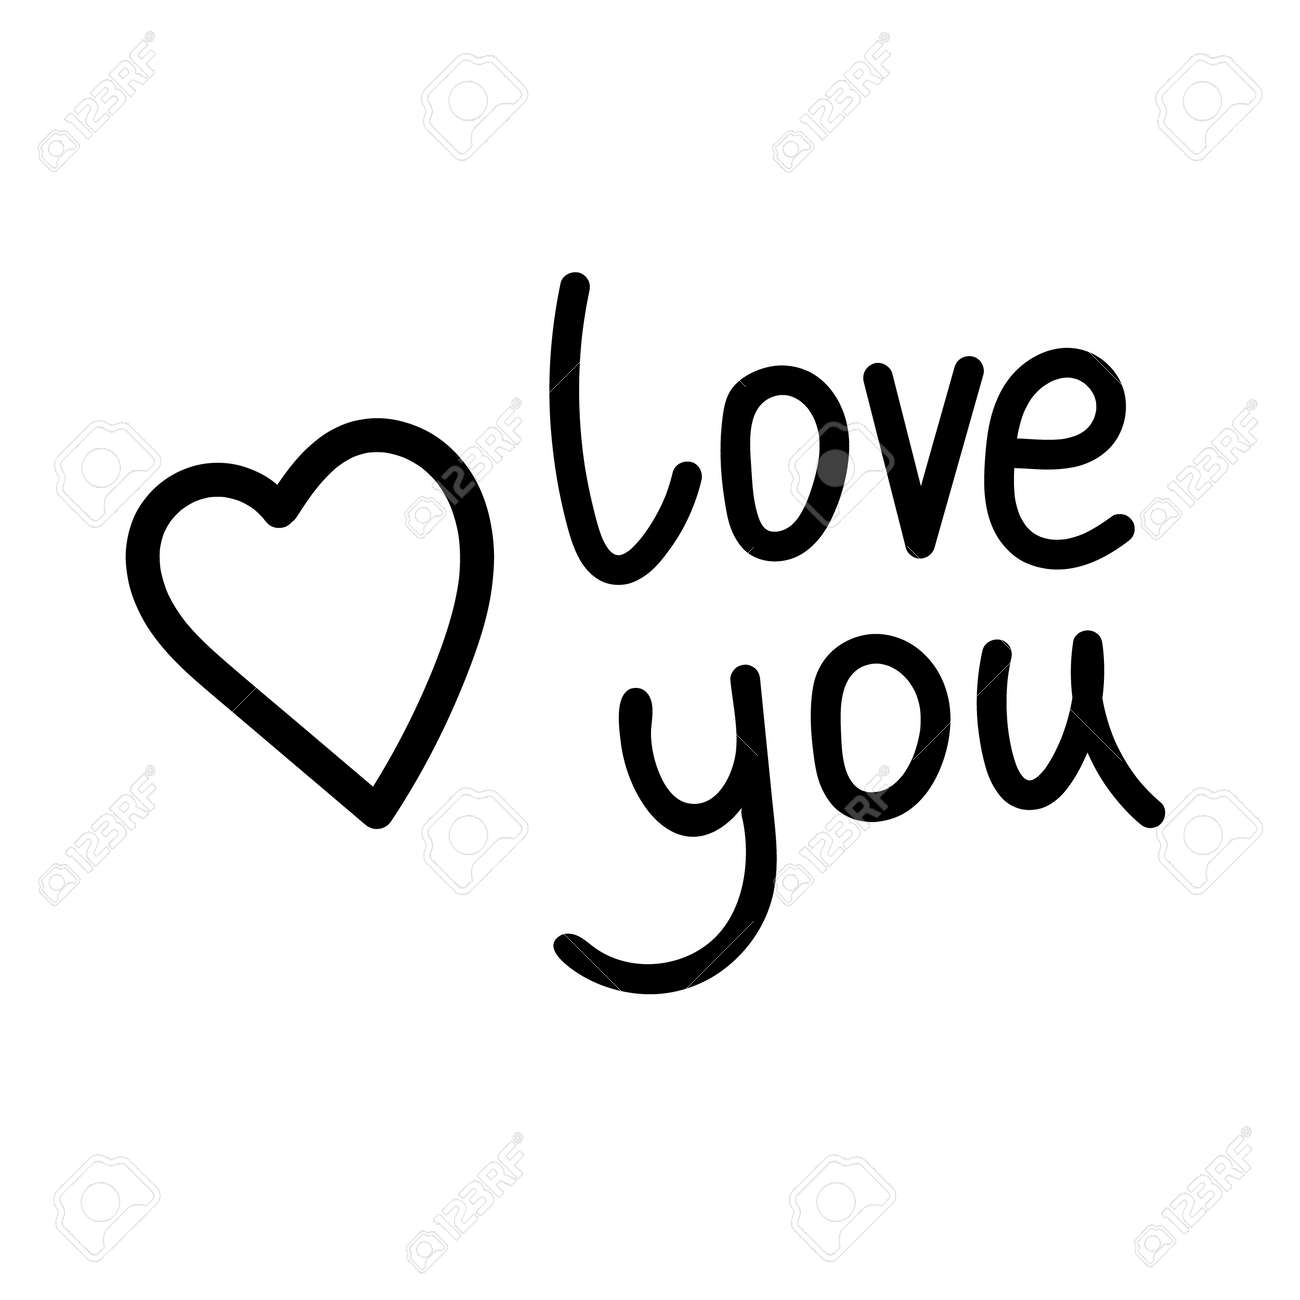 Love you text with heart. Love you - black calligraphy inscription. Love You vector illustration for postcard, greeting card and banner. Valentine's day card. - 161909305